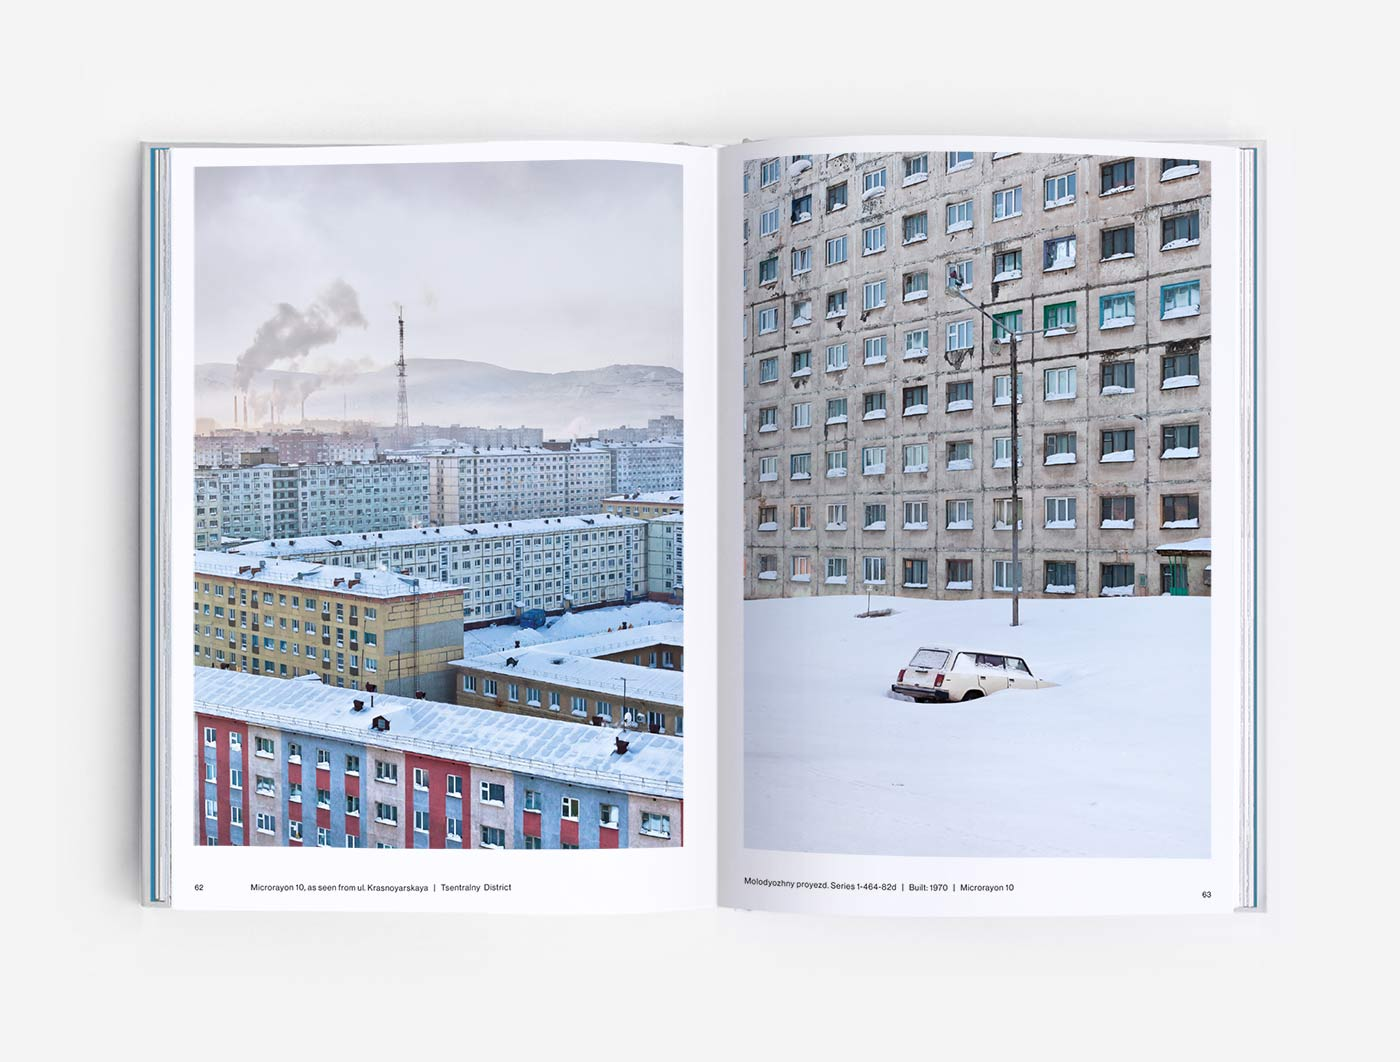 Skyline and Precast panel blocks in Norilsk, Siberia